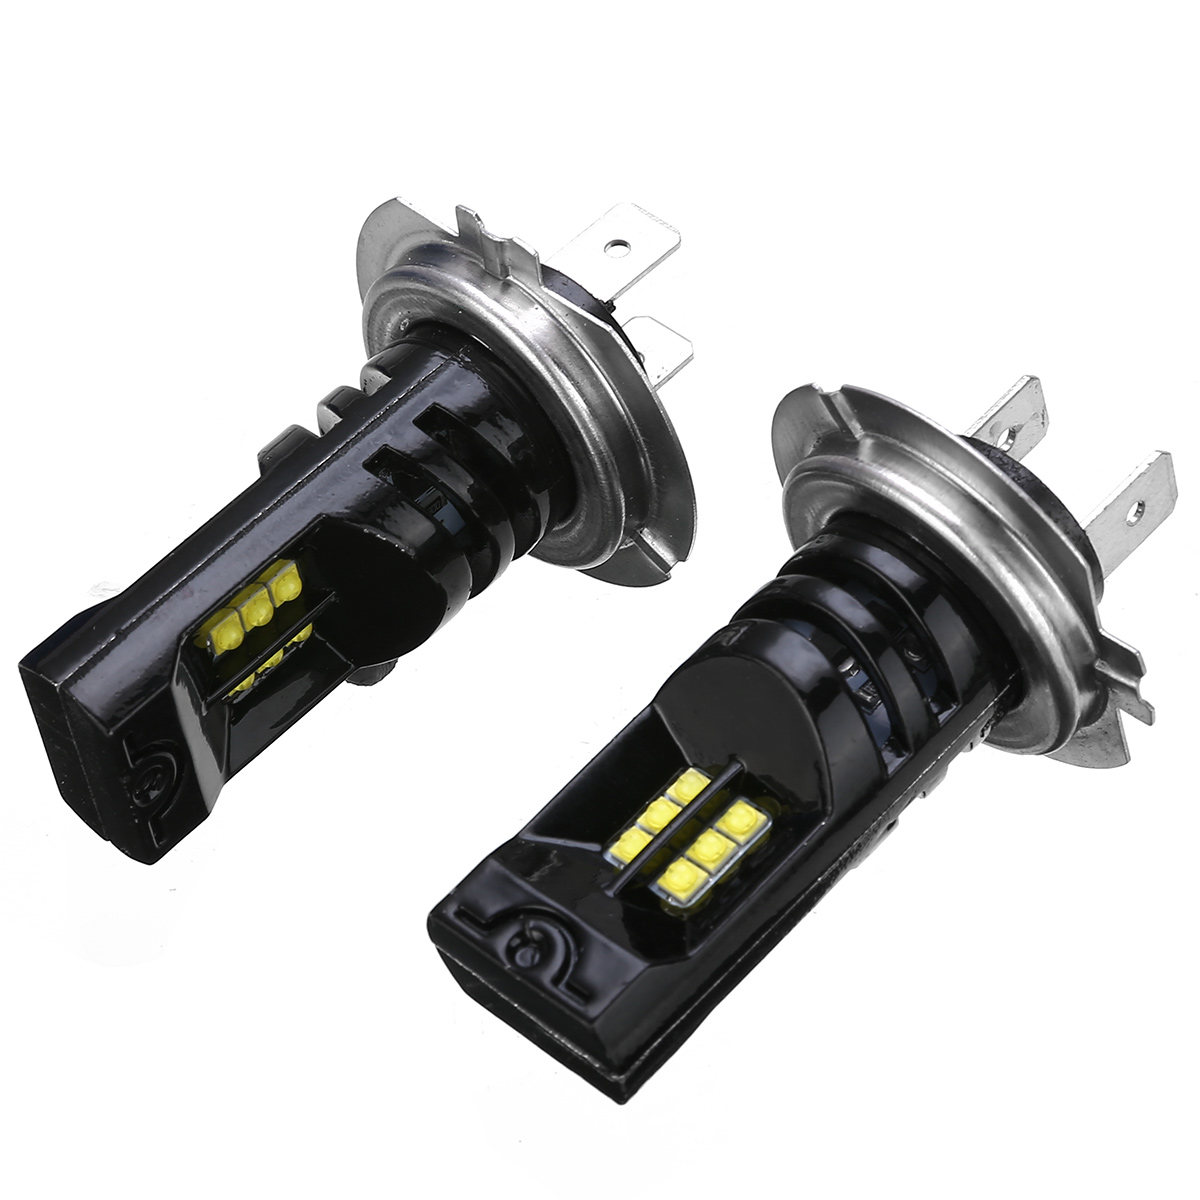 Universal 2pcs H7 <font><b>110W</b></font> Car LED Headlight Kit Error Free Lamp 28000LM 6500K Waterproof Accessories image